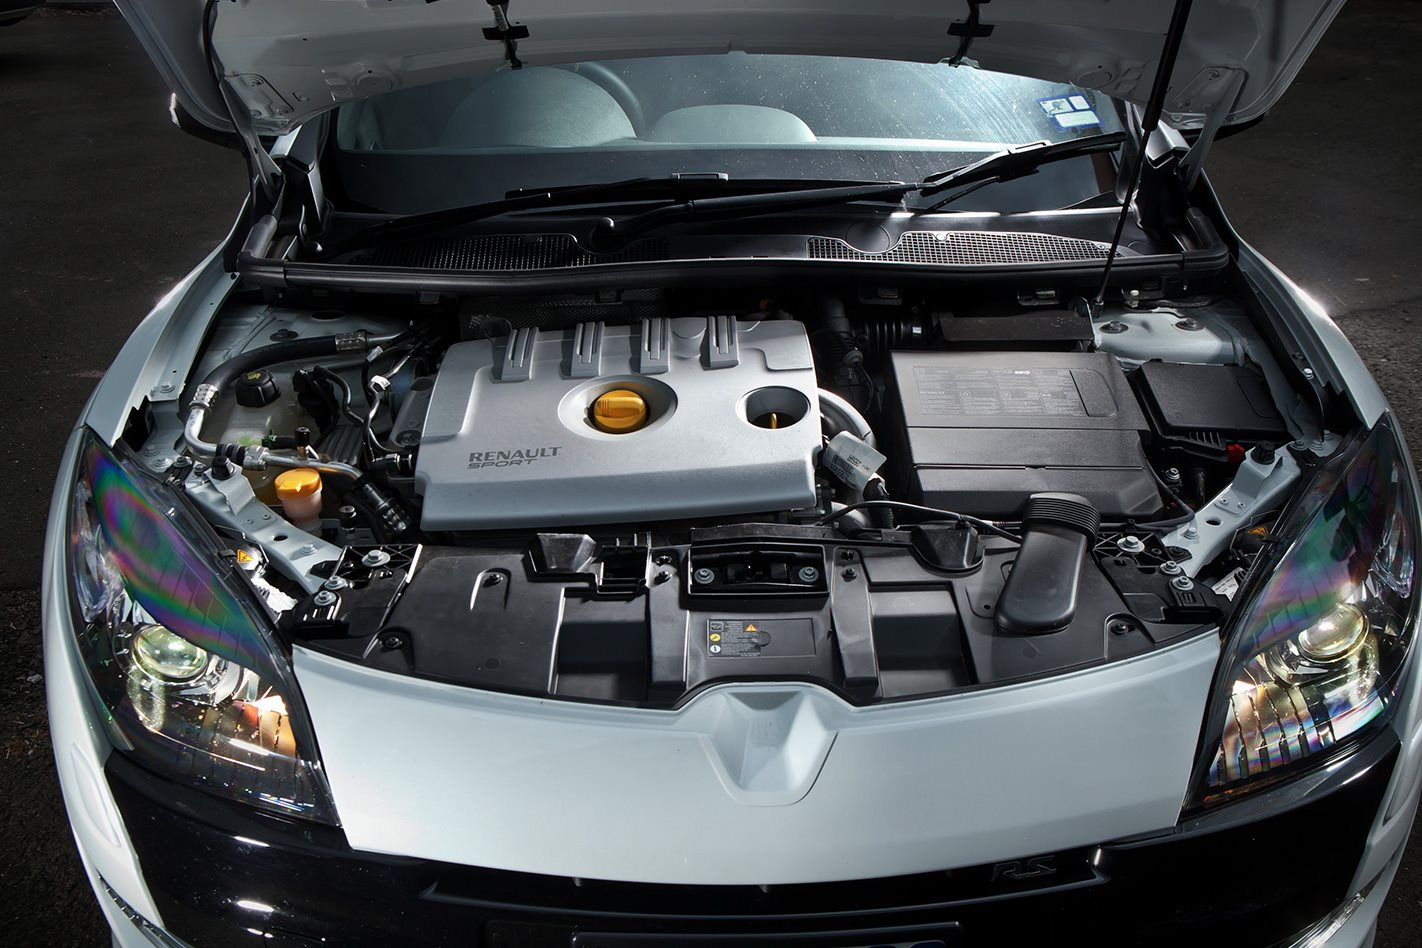 2012-Renault-Megane-RS265-engine.jpg